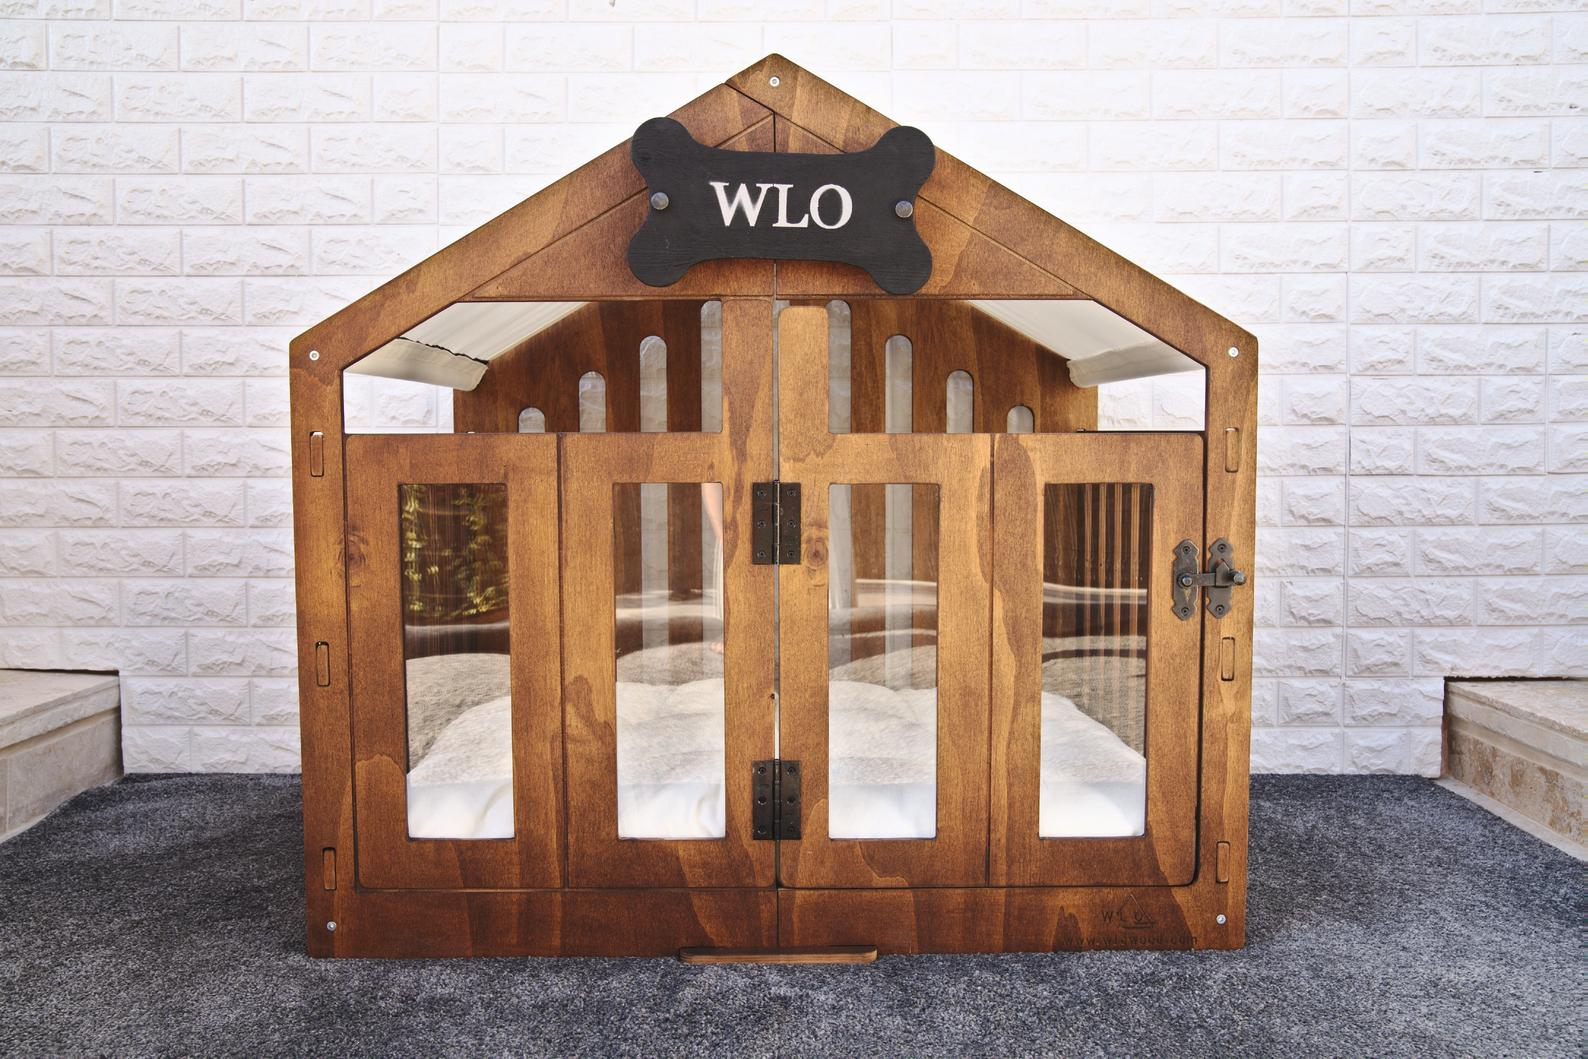 13 Practical Dog Crates for Big Dogs (up to XXXL) - Image via WLO Wood (Etsy) feat. Modern Dog House Crate (Tent Roof) (XXL – 51.2 inch)